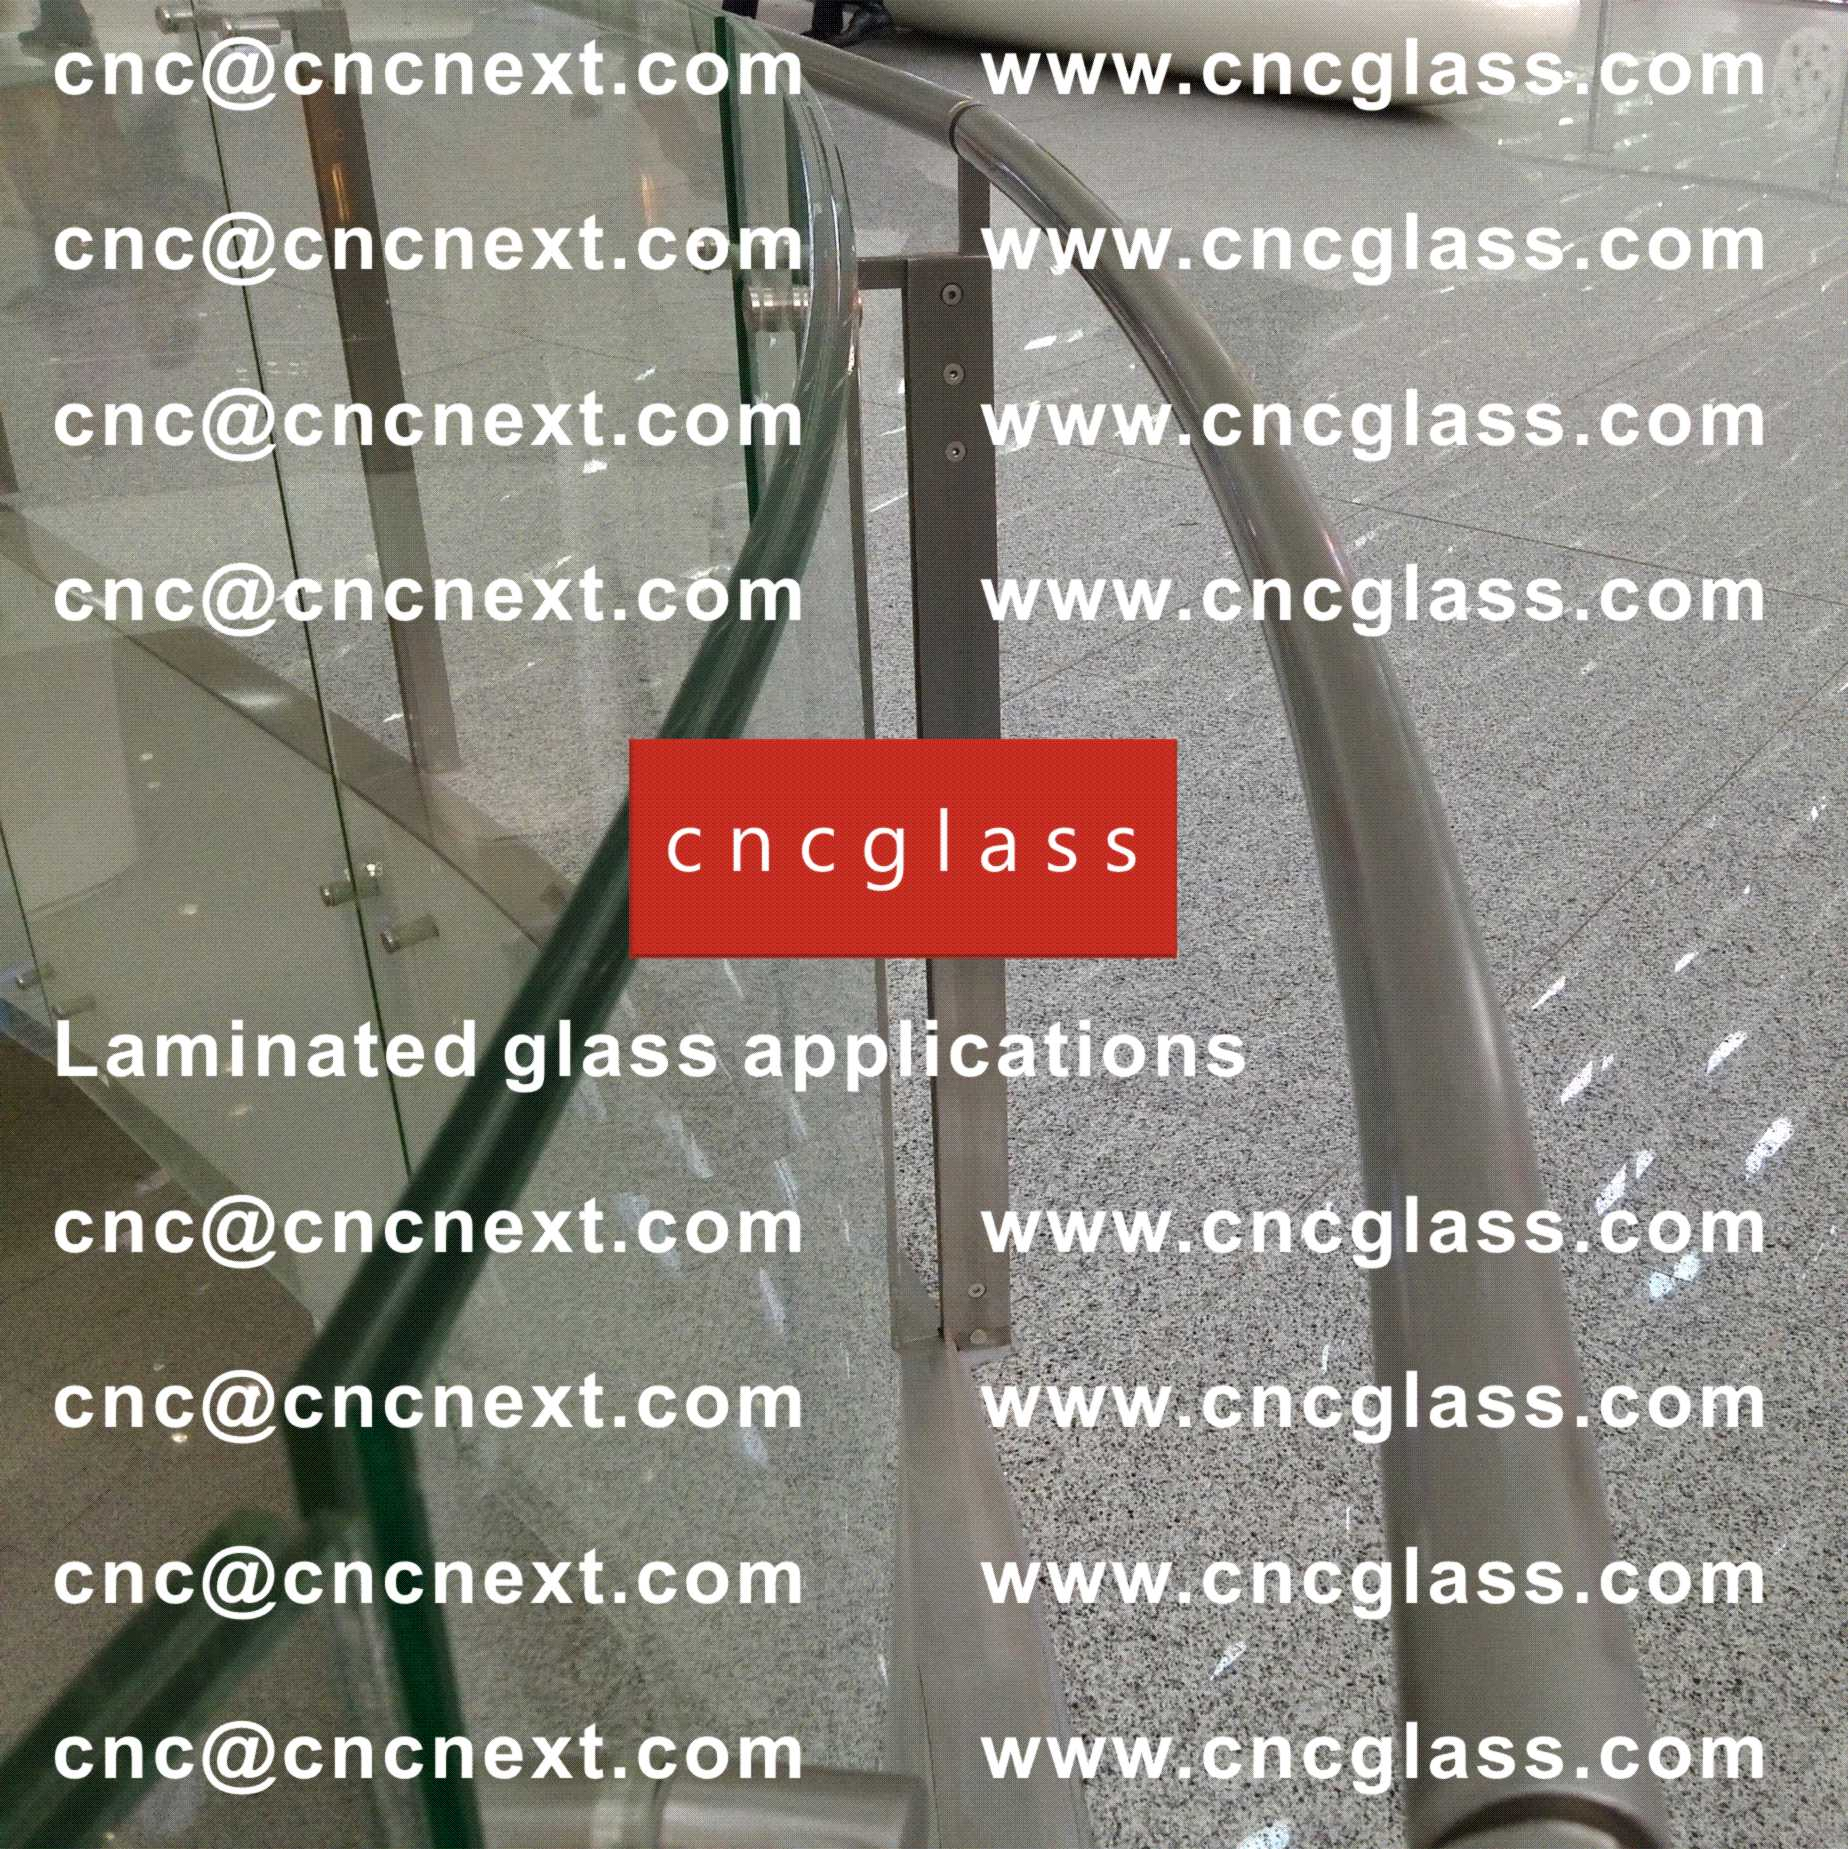 002 EVAFORCE LAMINATED GLASS